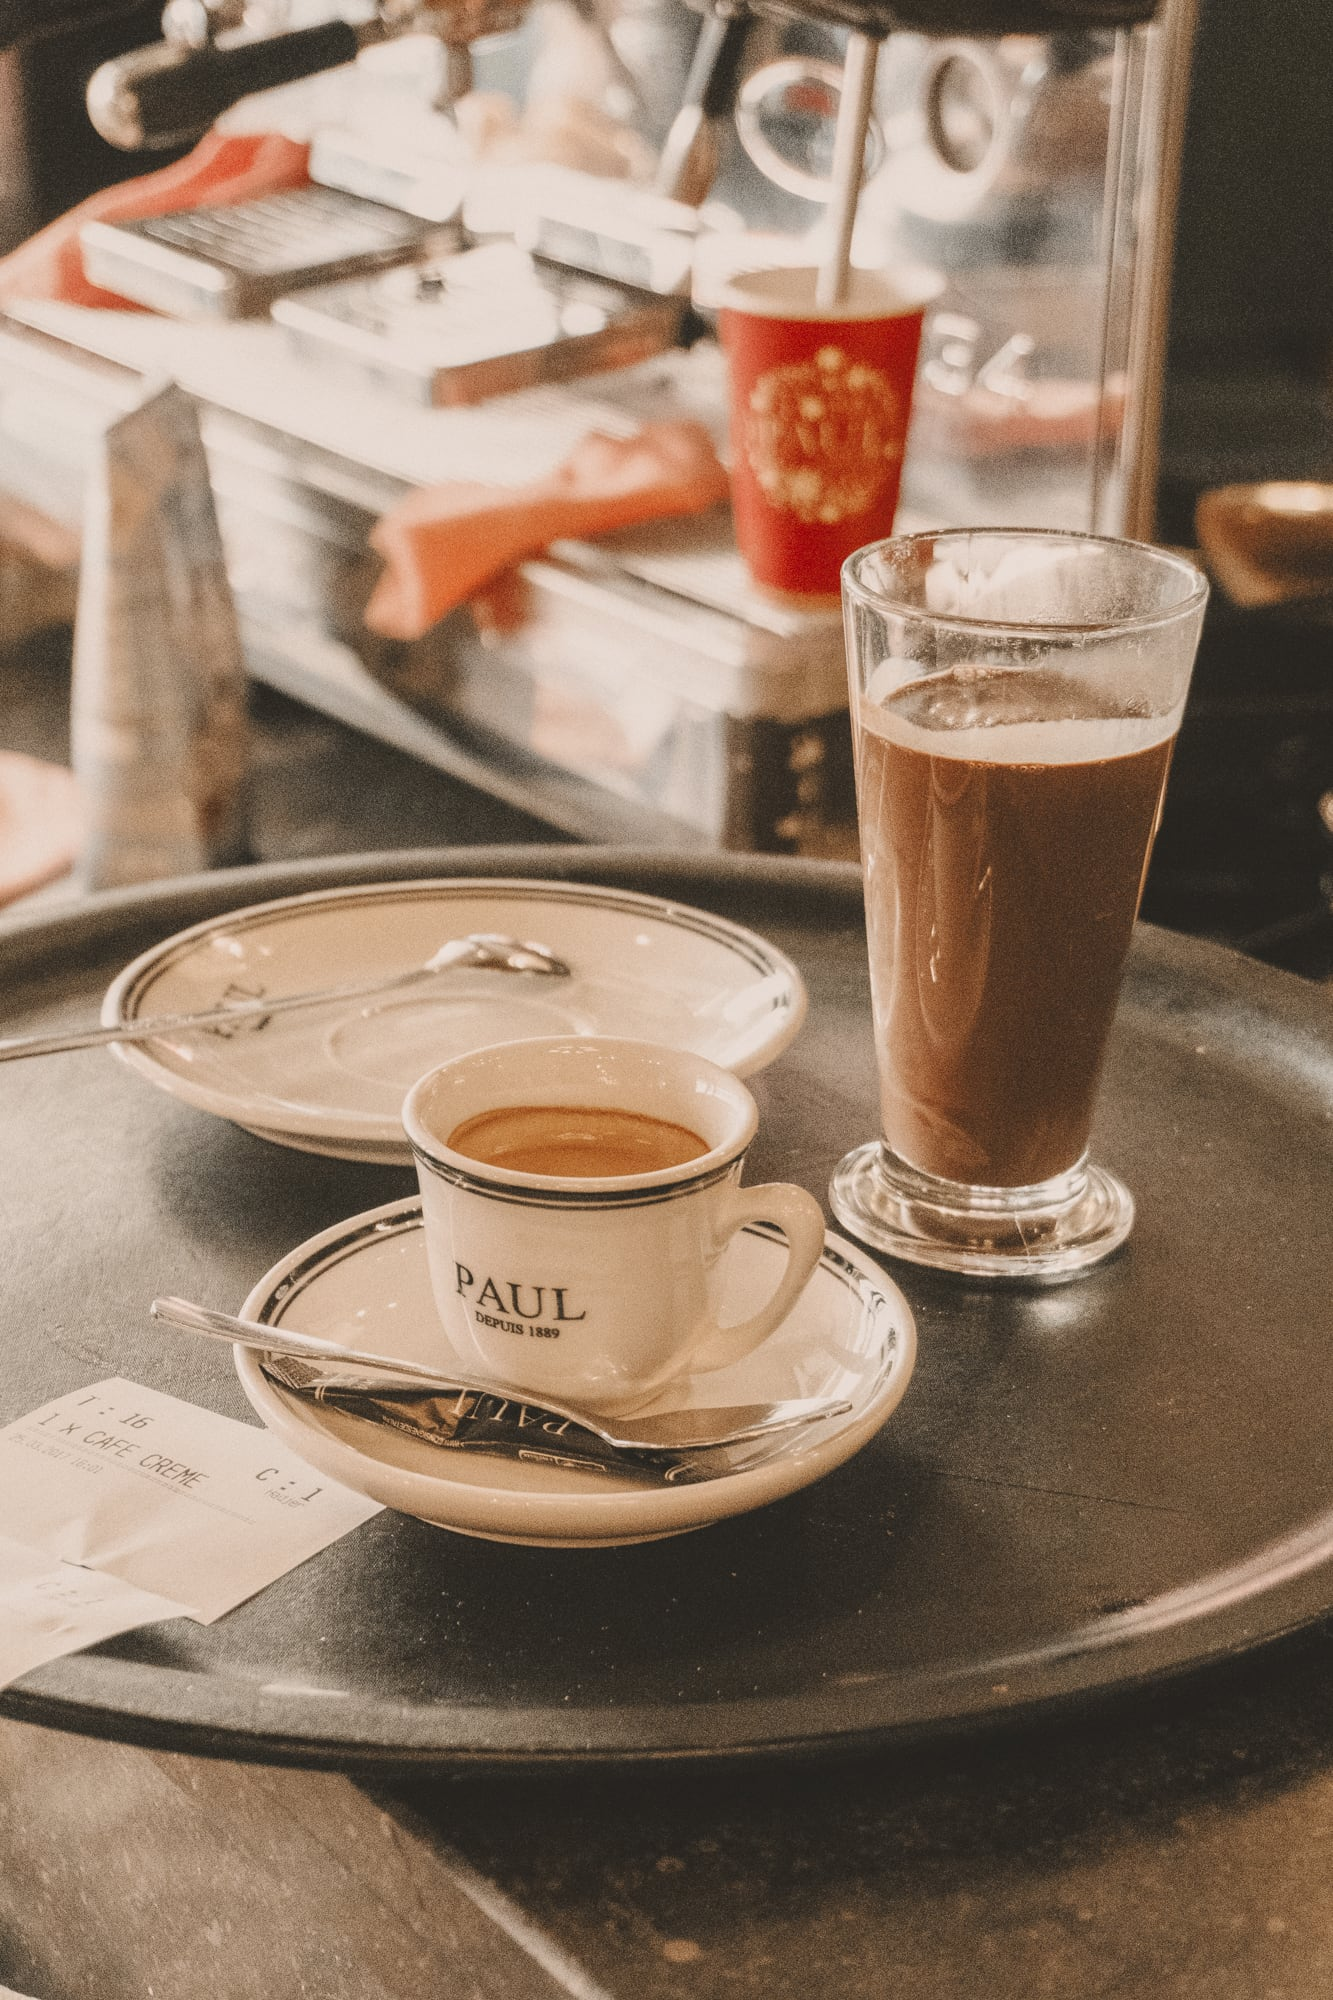 Coffee and hot chocolate at Paul Cafe, Paris